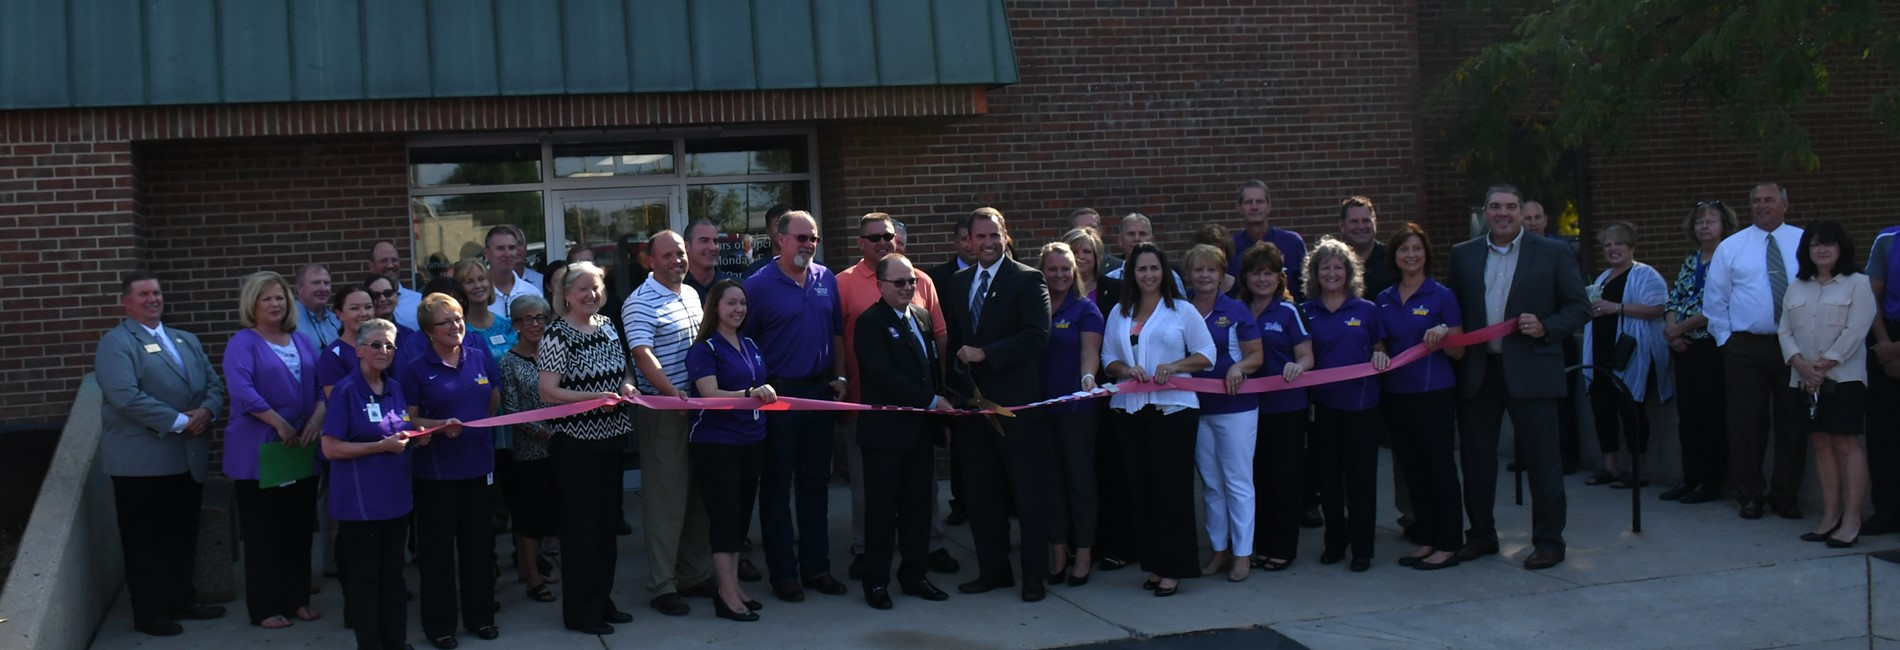 Board of Education Ribbon Cutting Ceremony